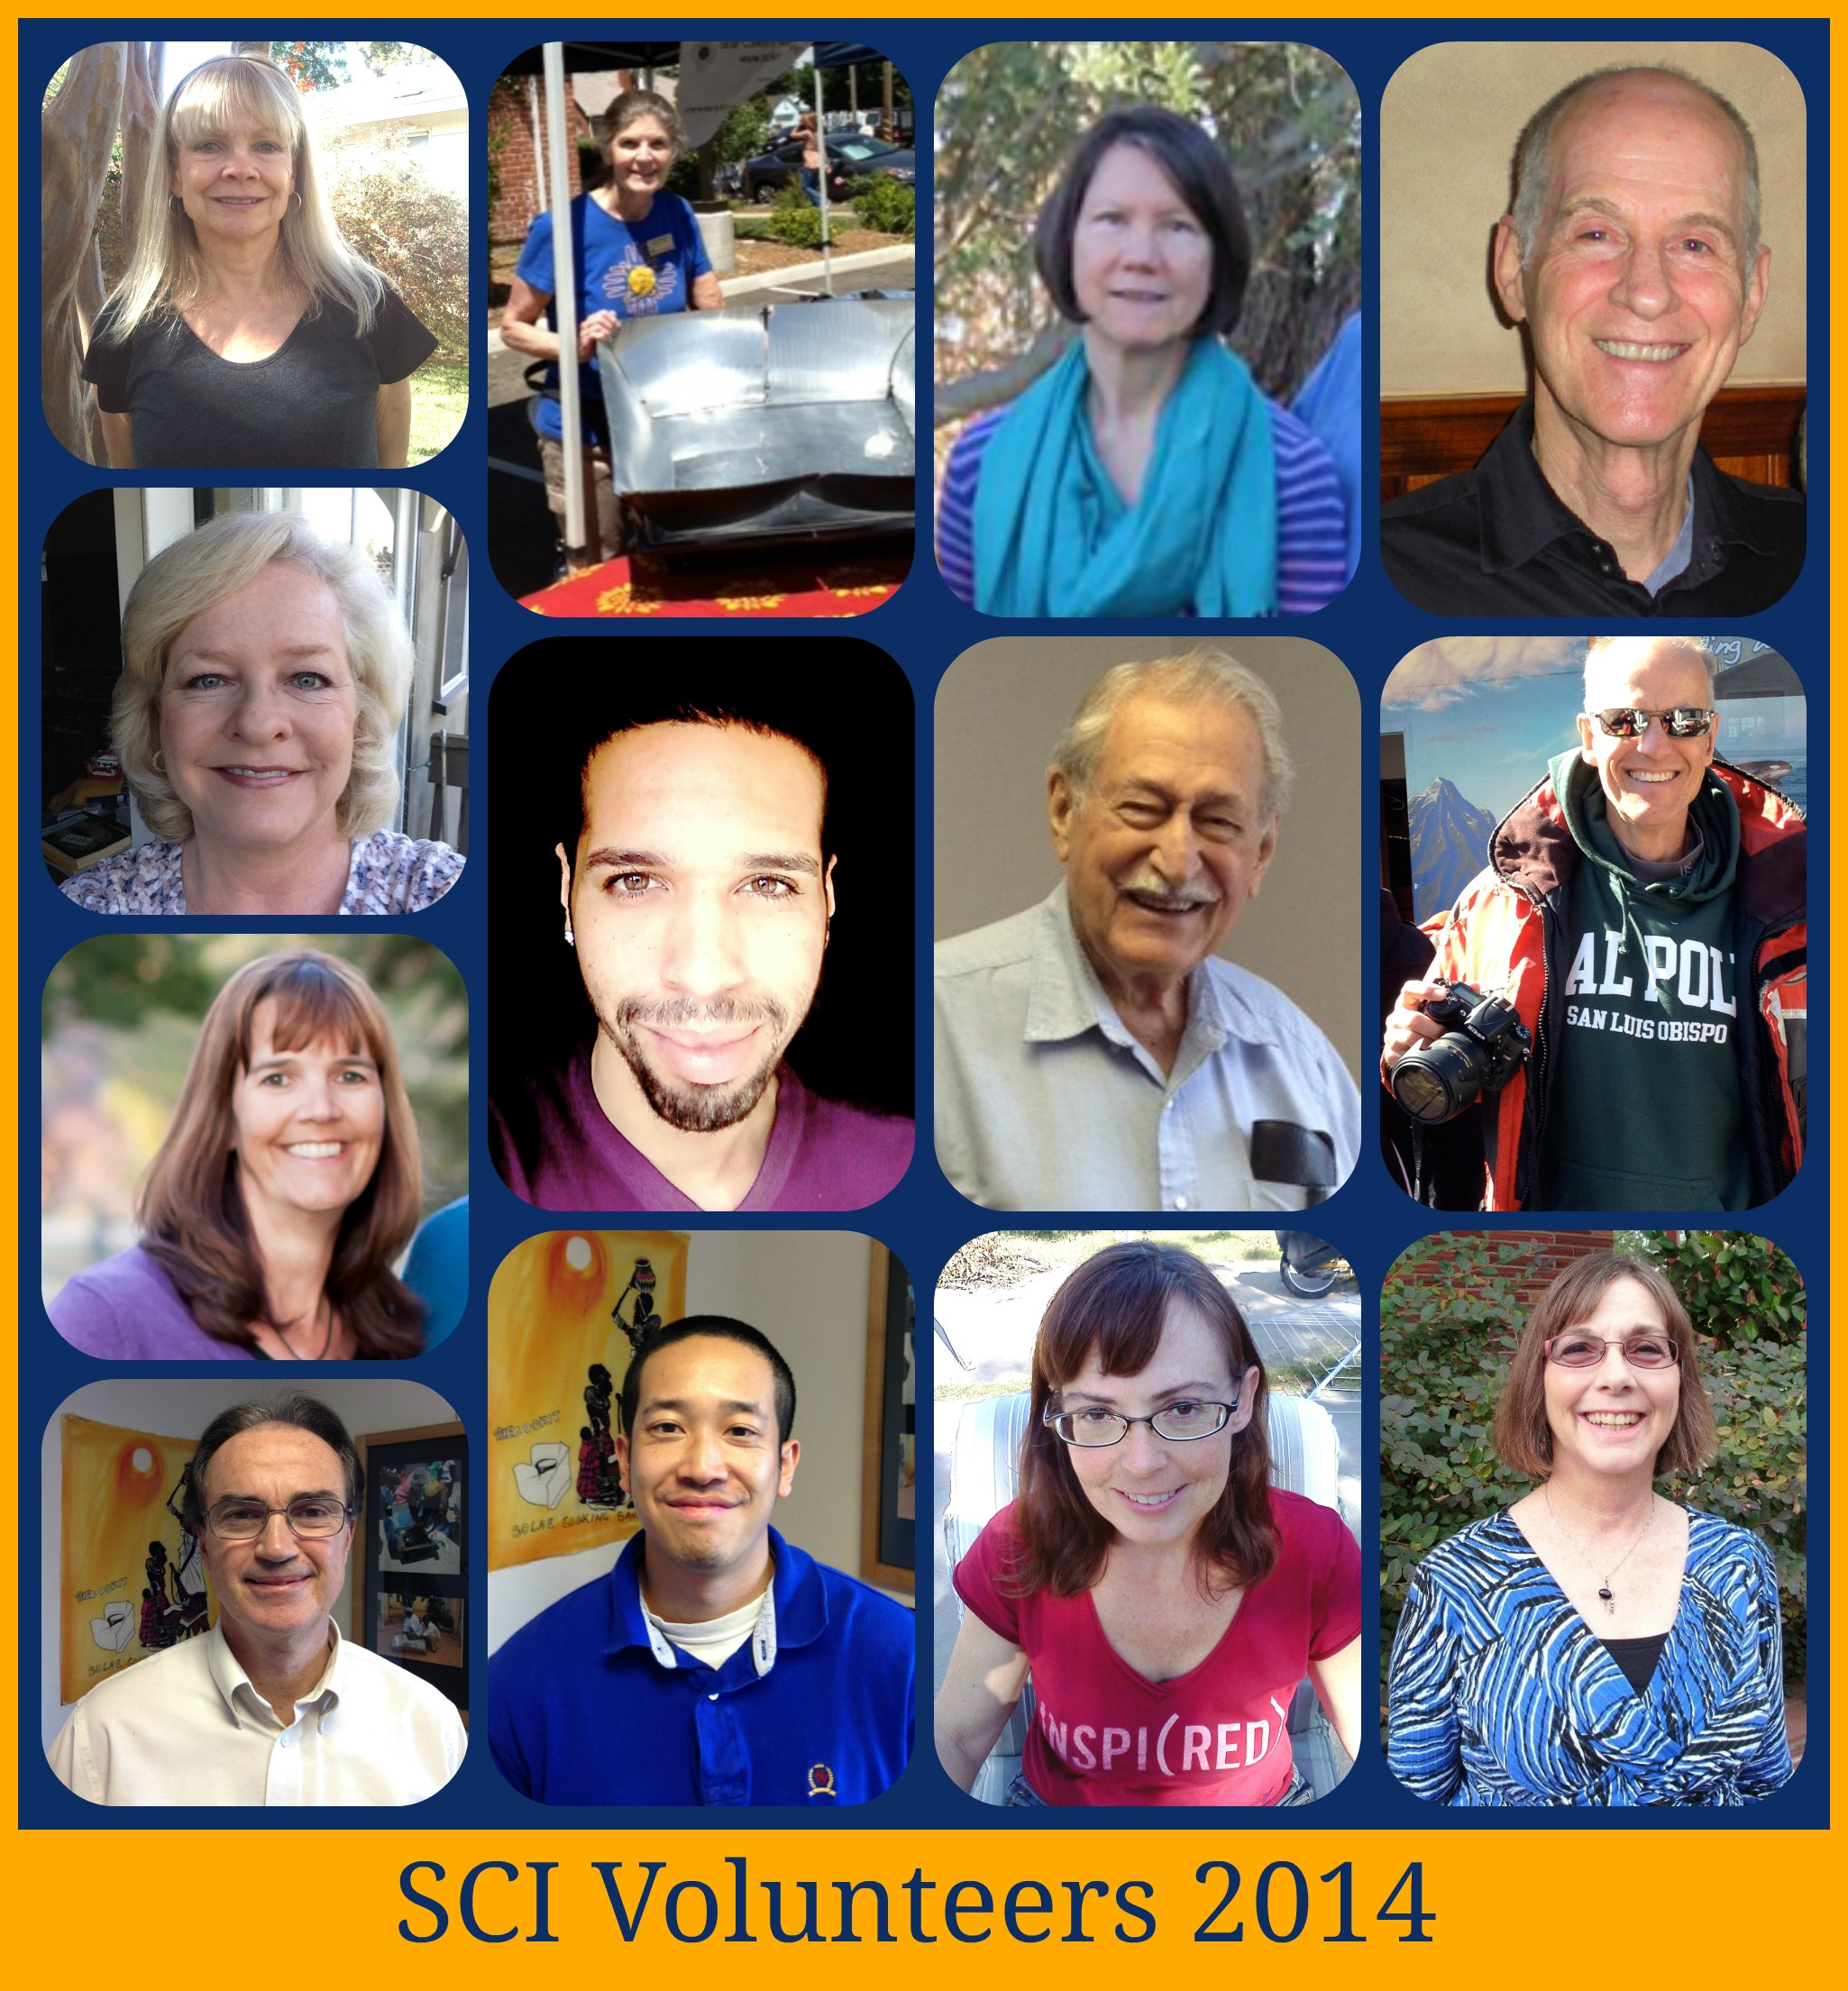 Volunteer Collage 2.jpg